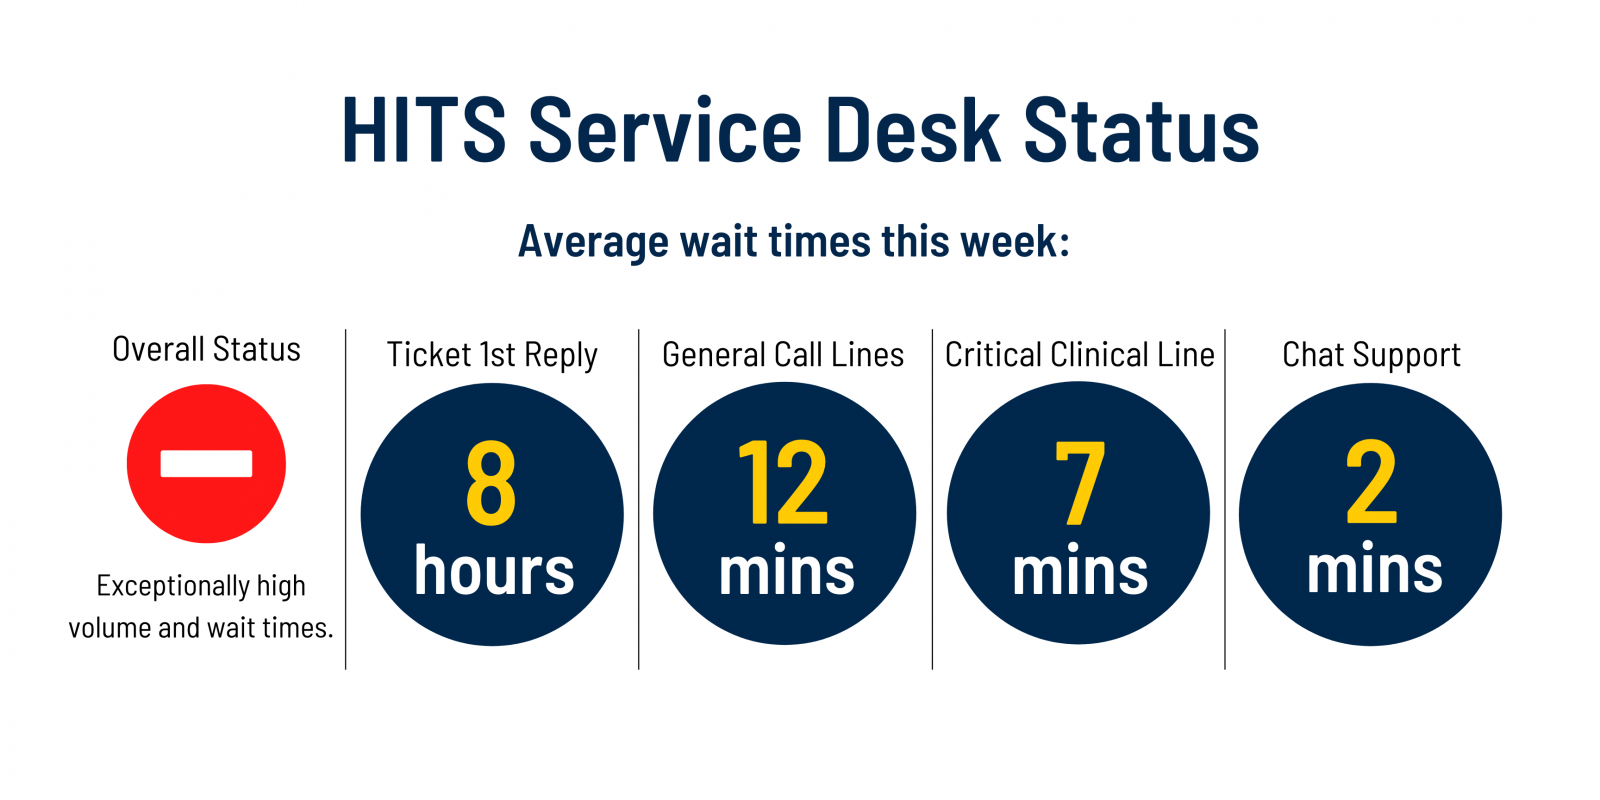 Service Desk current status is red. Expect exceptionally high volume and wait times.